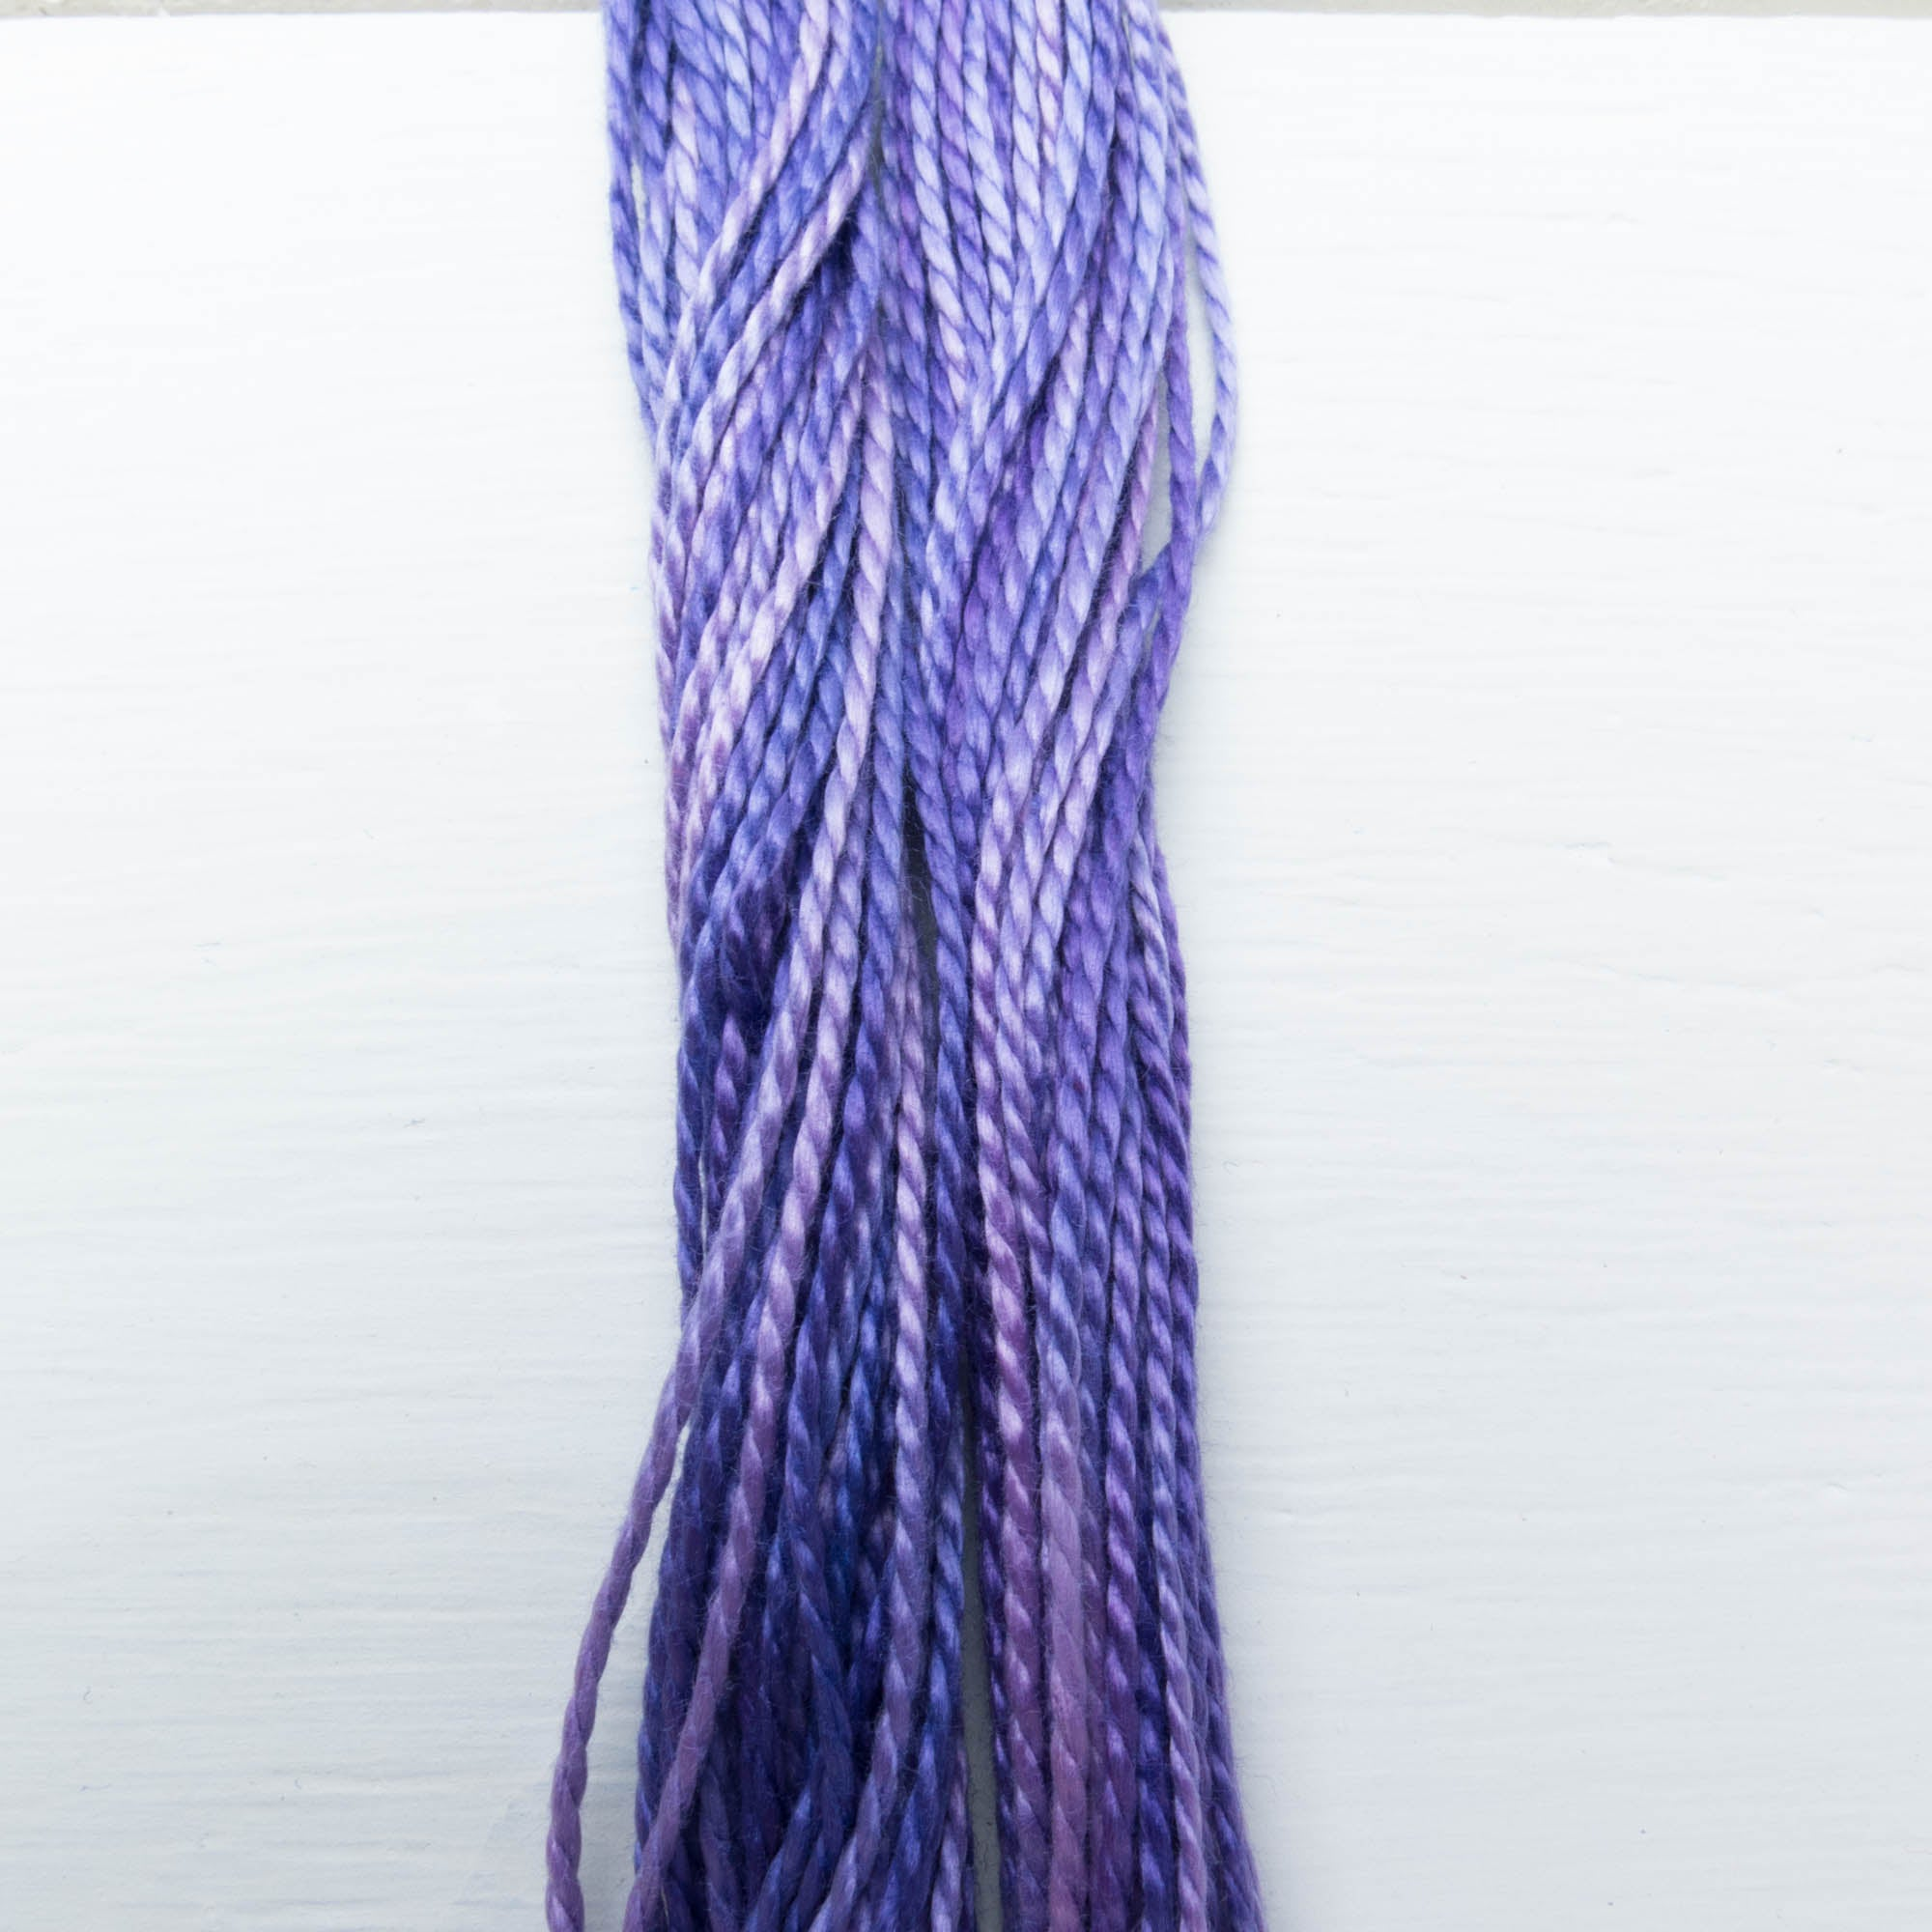 Size 3 Perle Cotton Thread - Weeks Dye Works Peoria Purple (2333) Perle Cotton - Snuggly Monkey